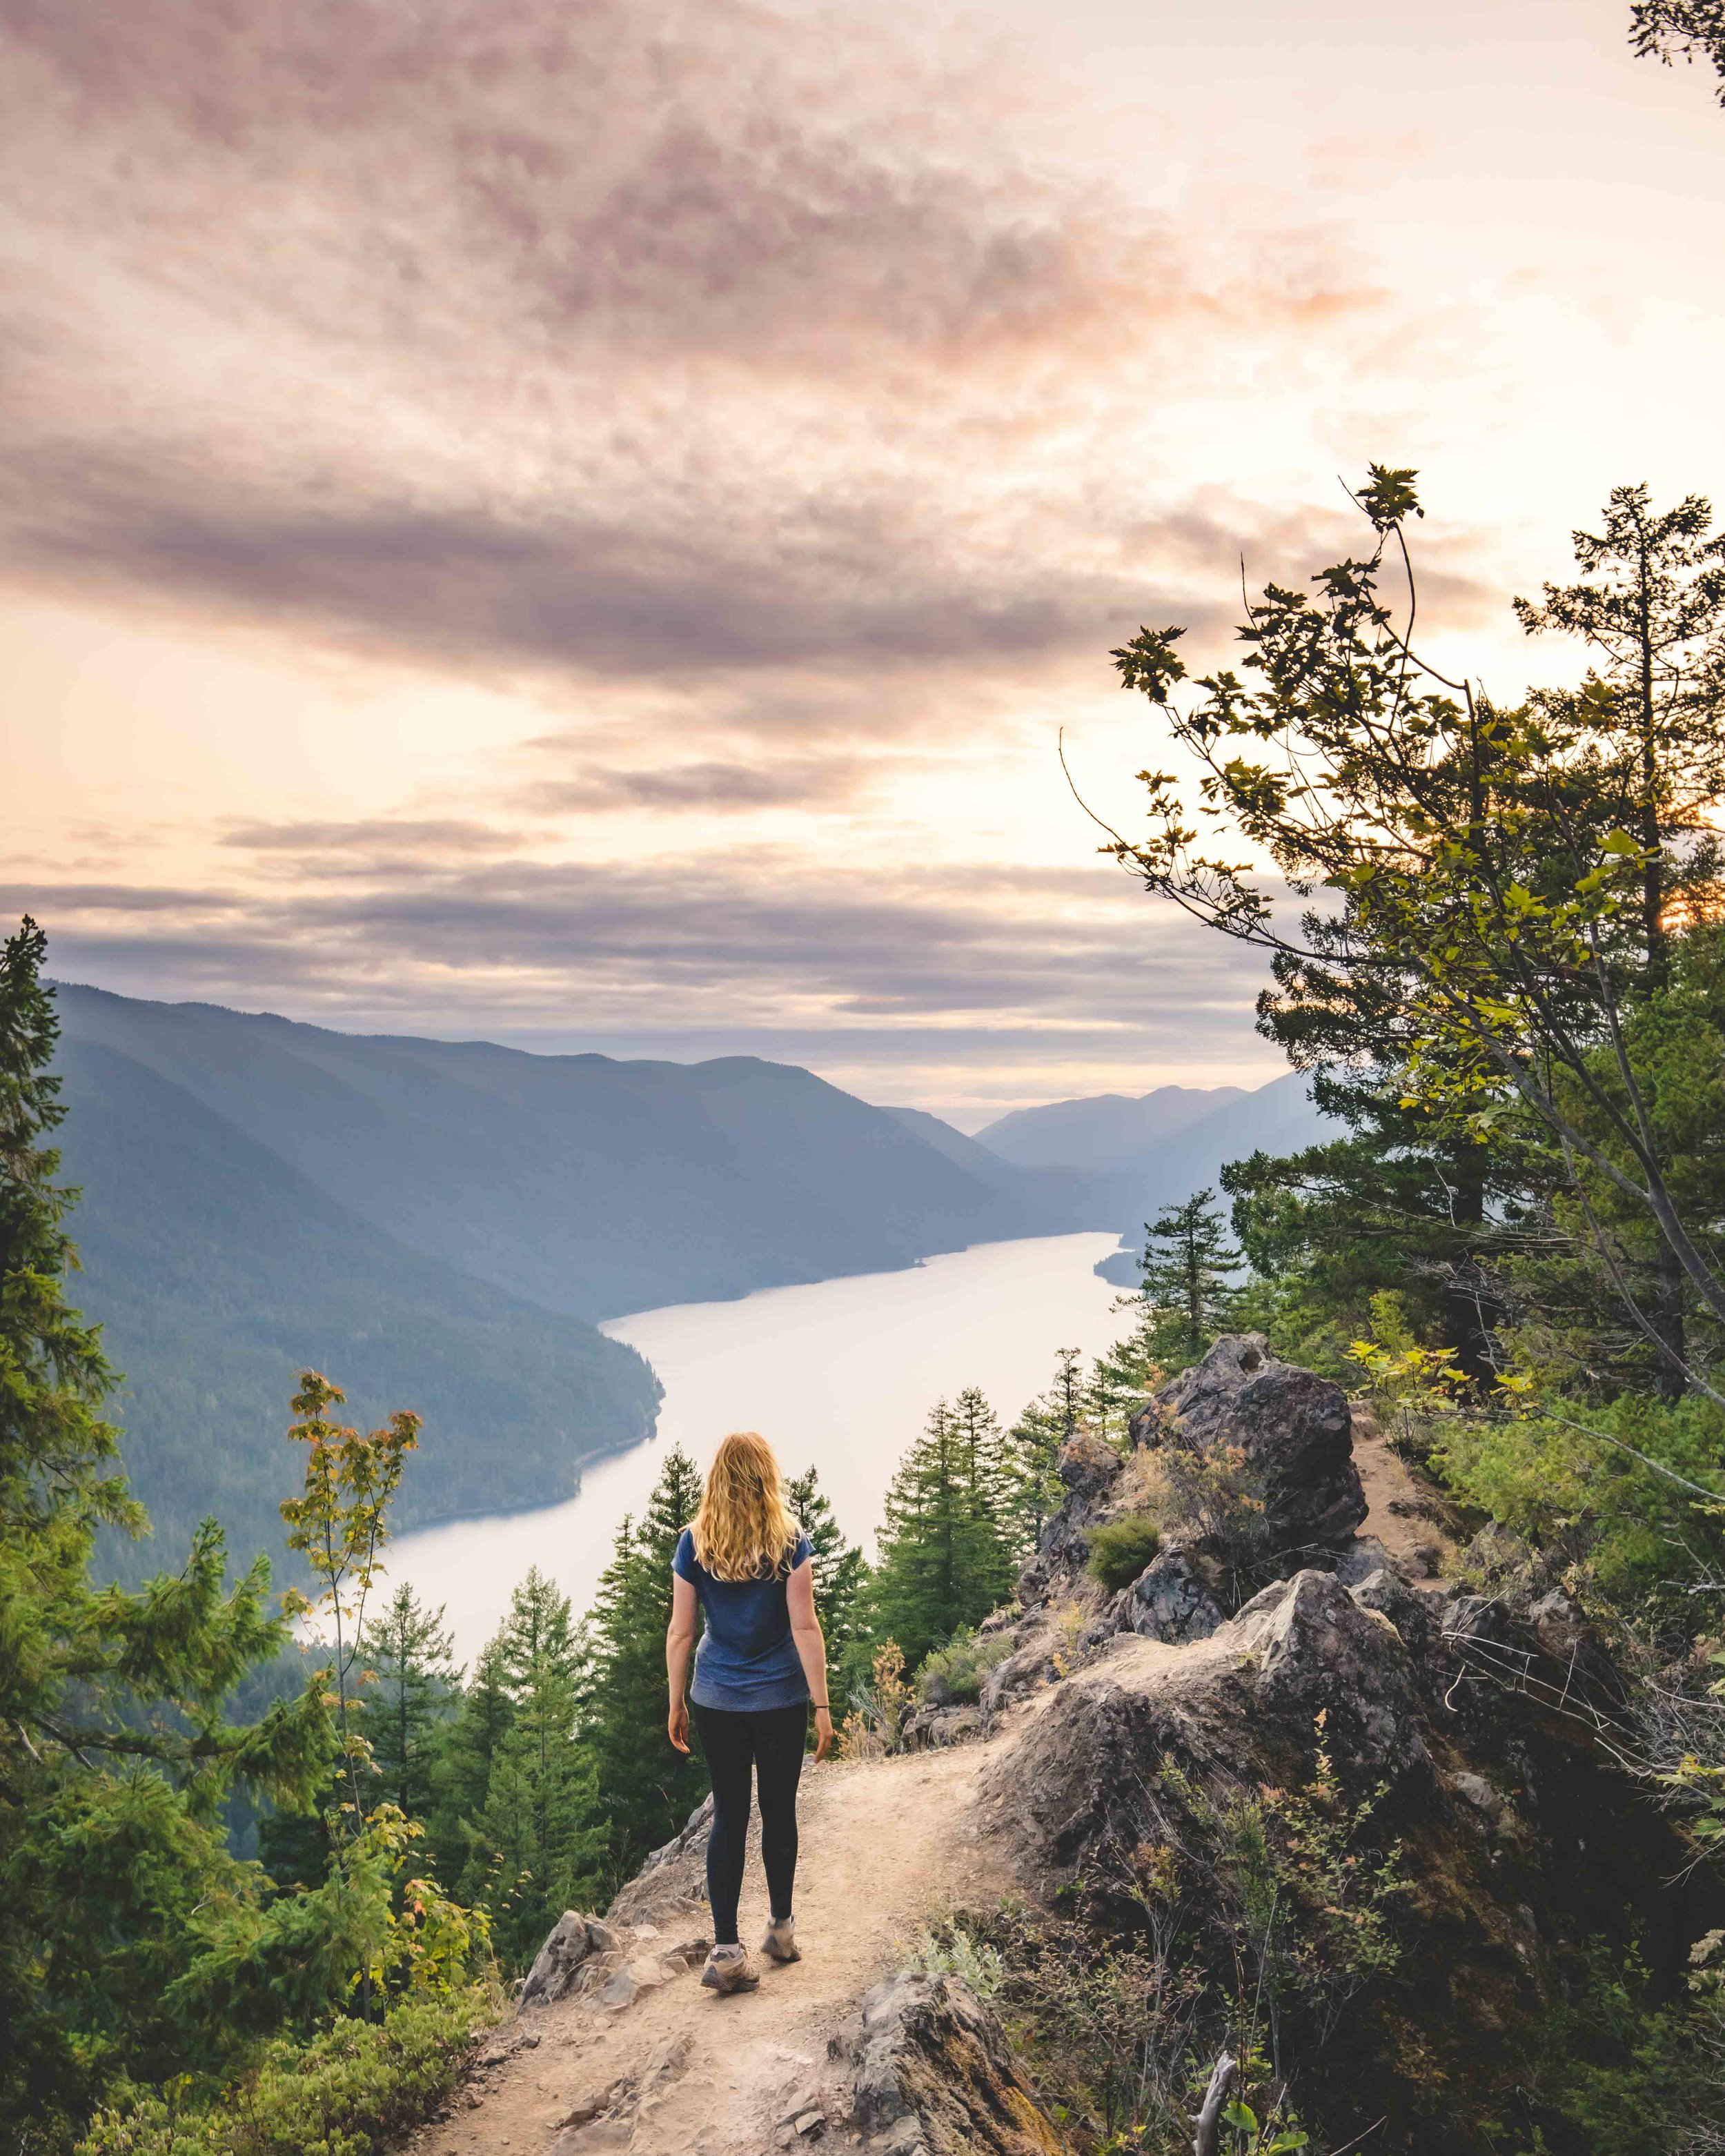 Mount Storm King - Hikes in Olympic National Park